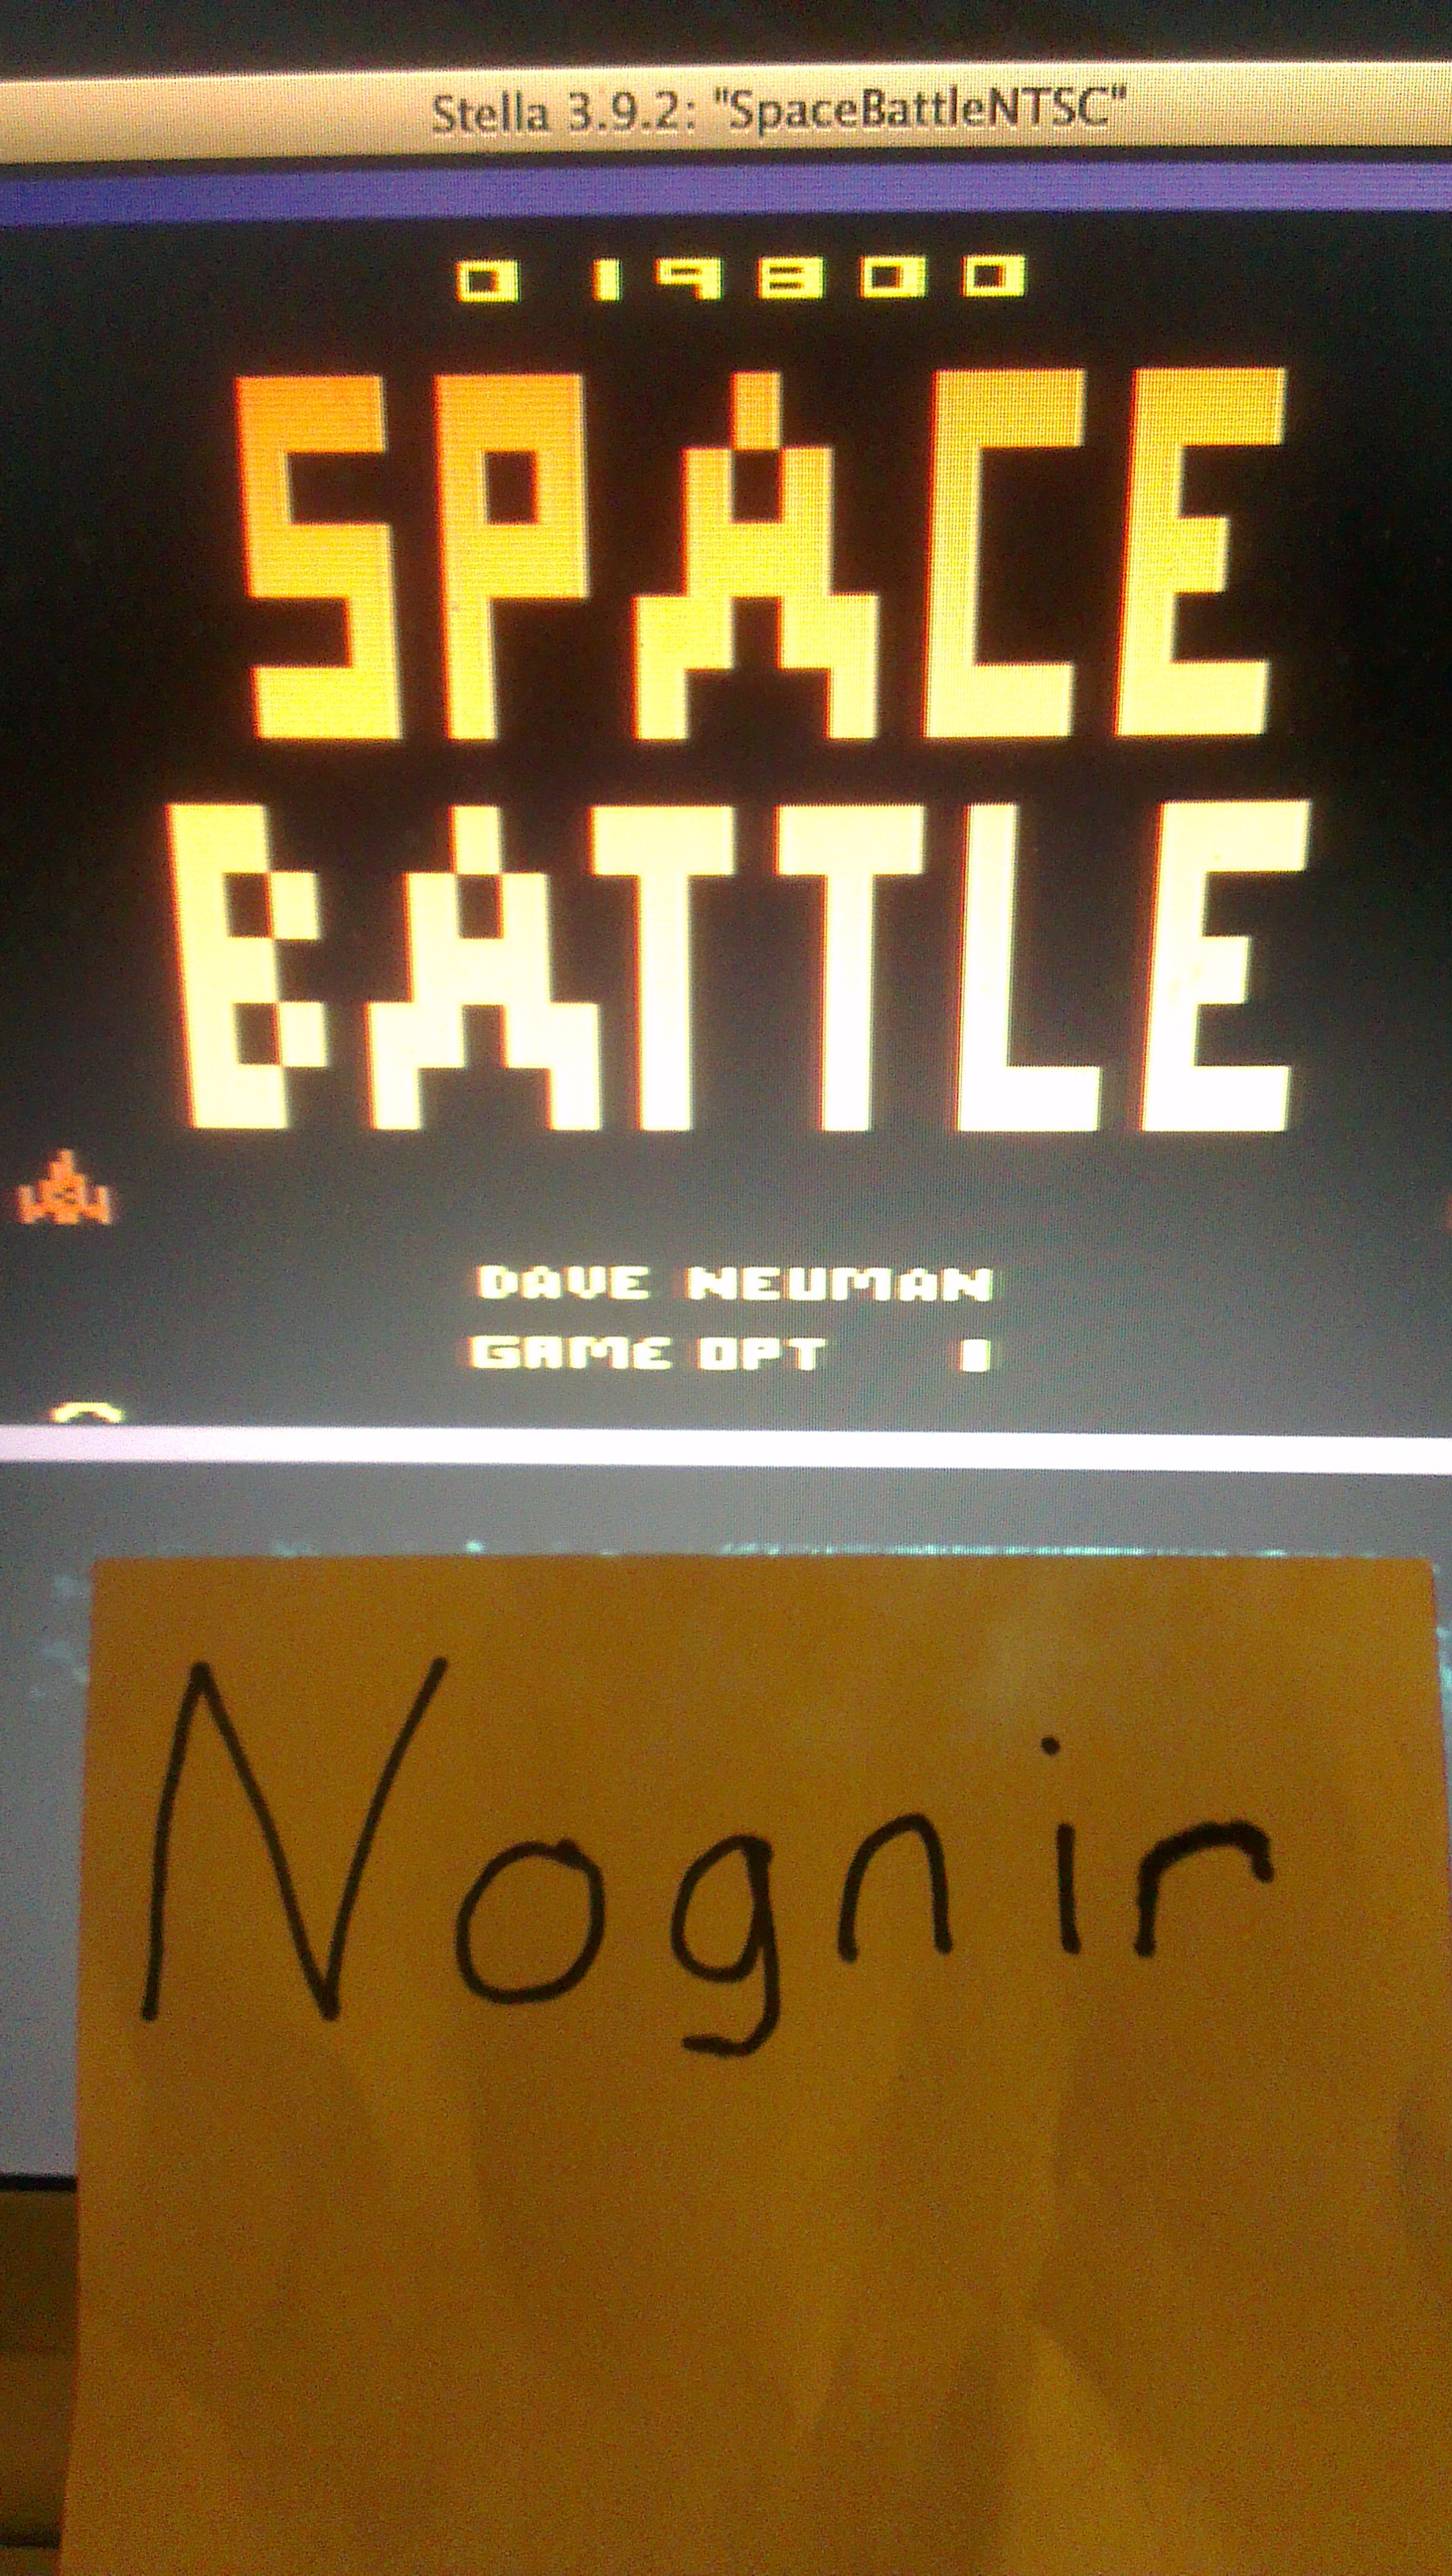 Nognir: Space Battle (Atari 2600 Emulated) 19,800 points on 2014-04-11 19:09:18